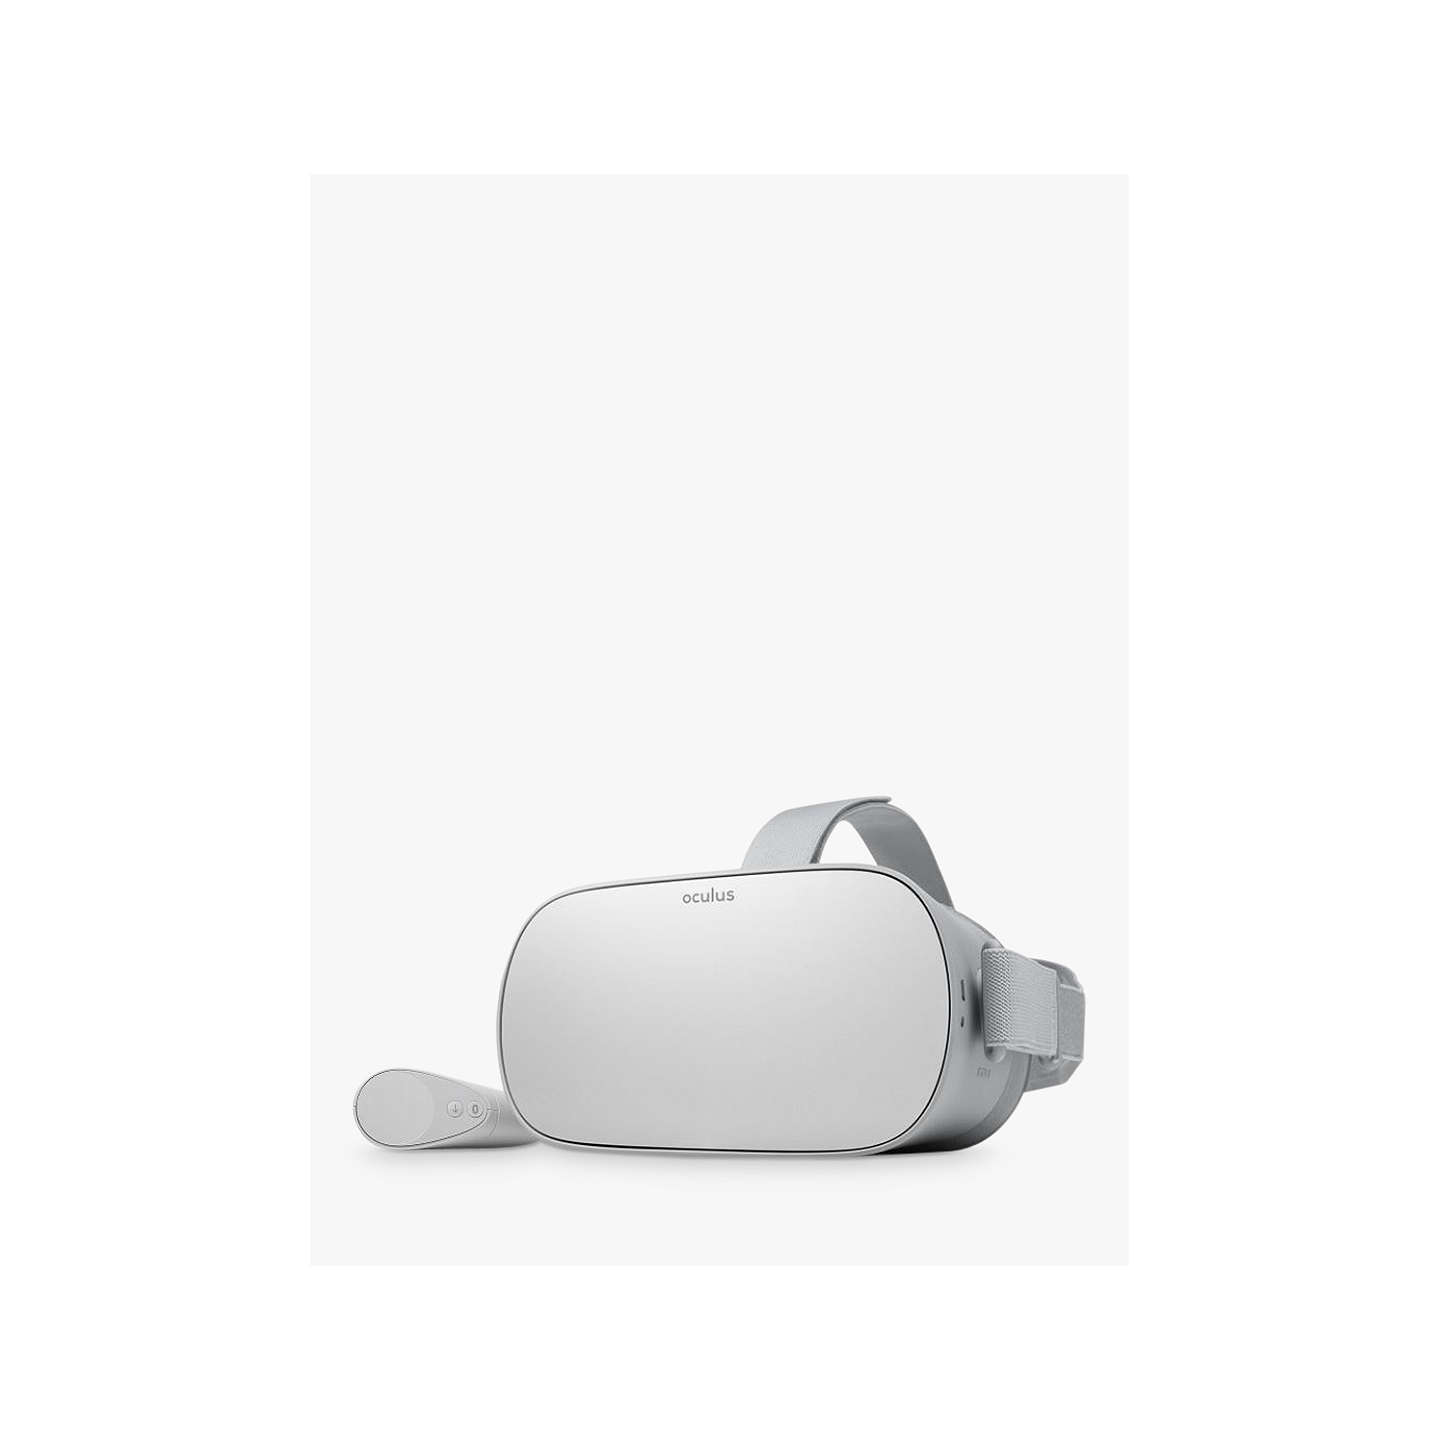 BuyOculus Go, Standalone Virtual Reality Headset and Controller, 32GB, Silver Online at johnlewis.com